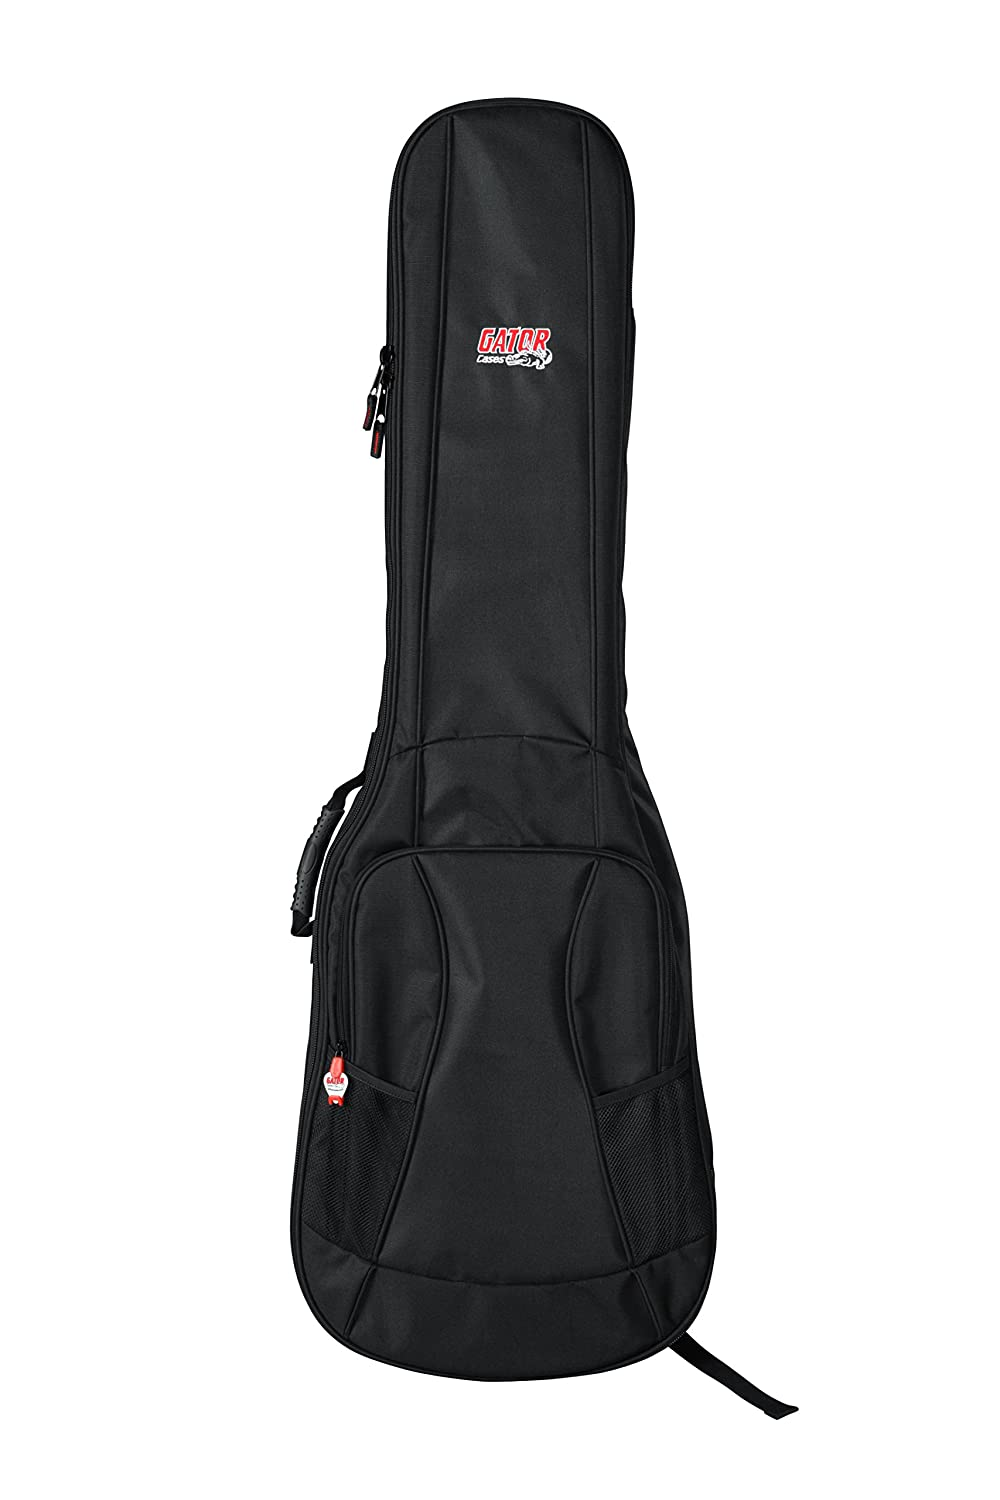 Gator Cases 4G Series Gig Bag for Bass Guitars with Adjustable Backpack Straps (GB-4G-BASS)